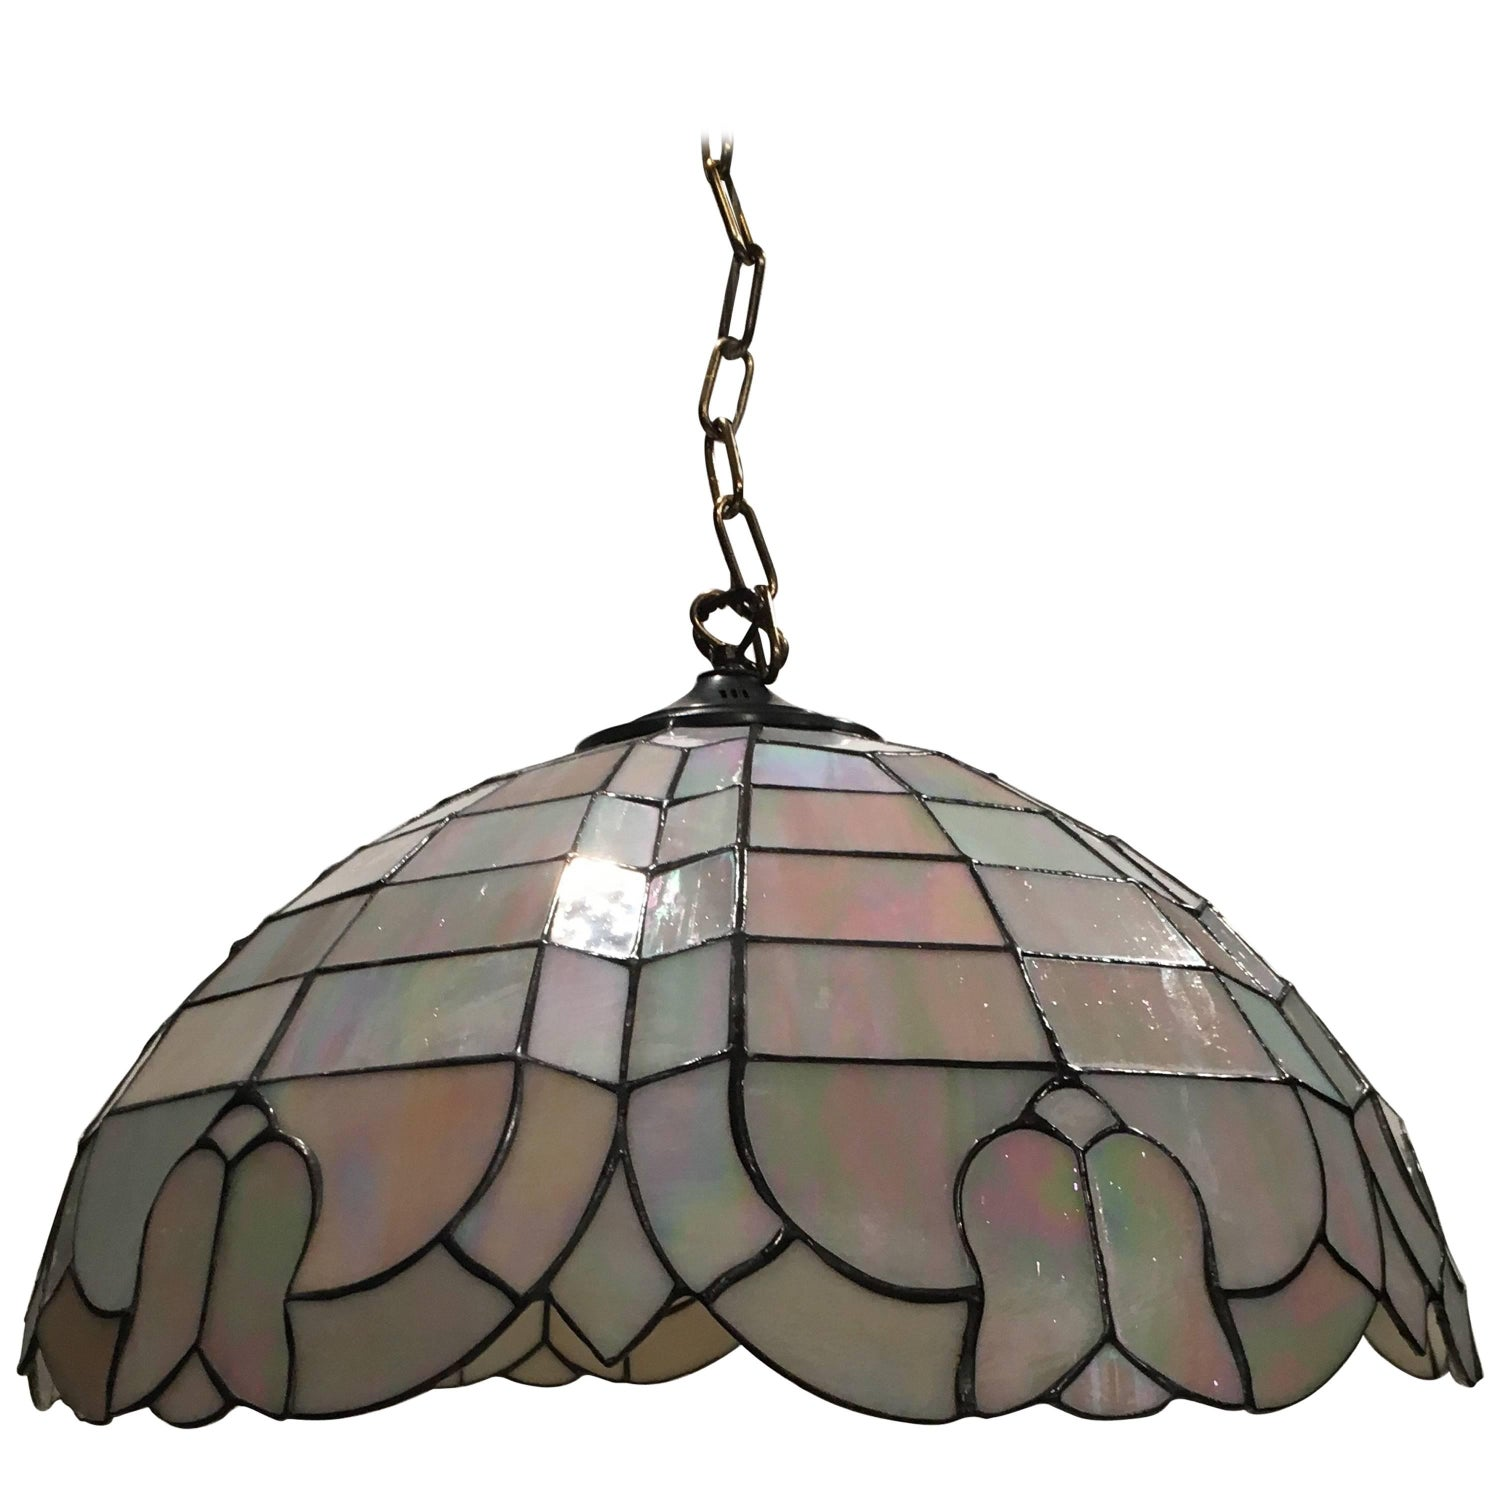 Tiffany Studios Chandeliers and Pendants 9 For Sale at 1stdibs